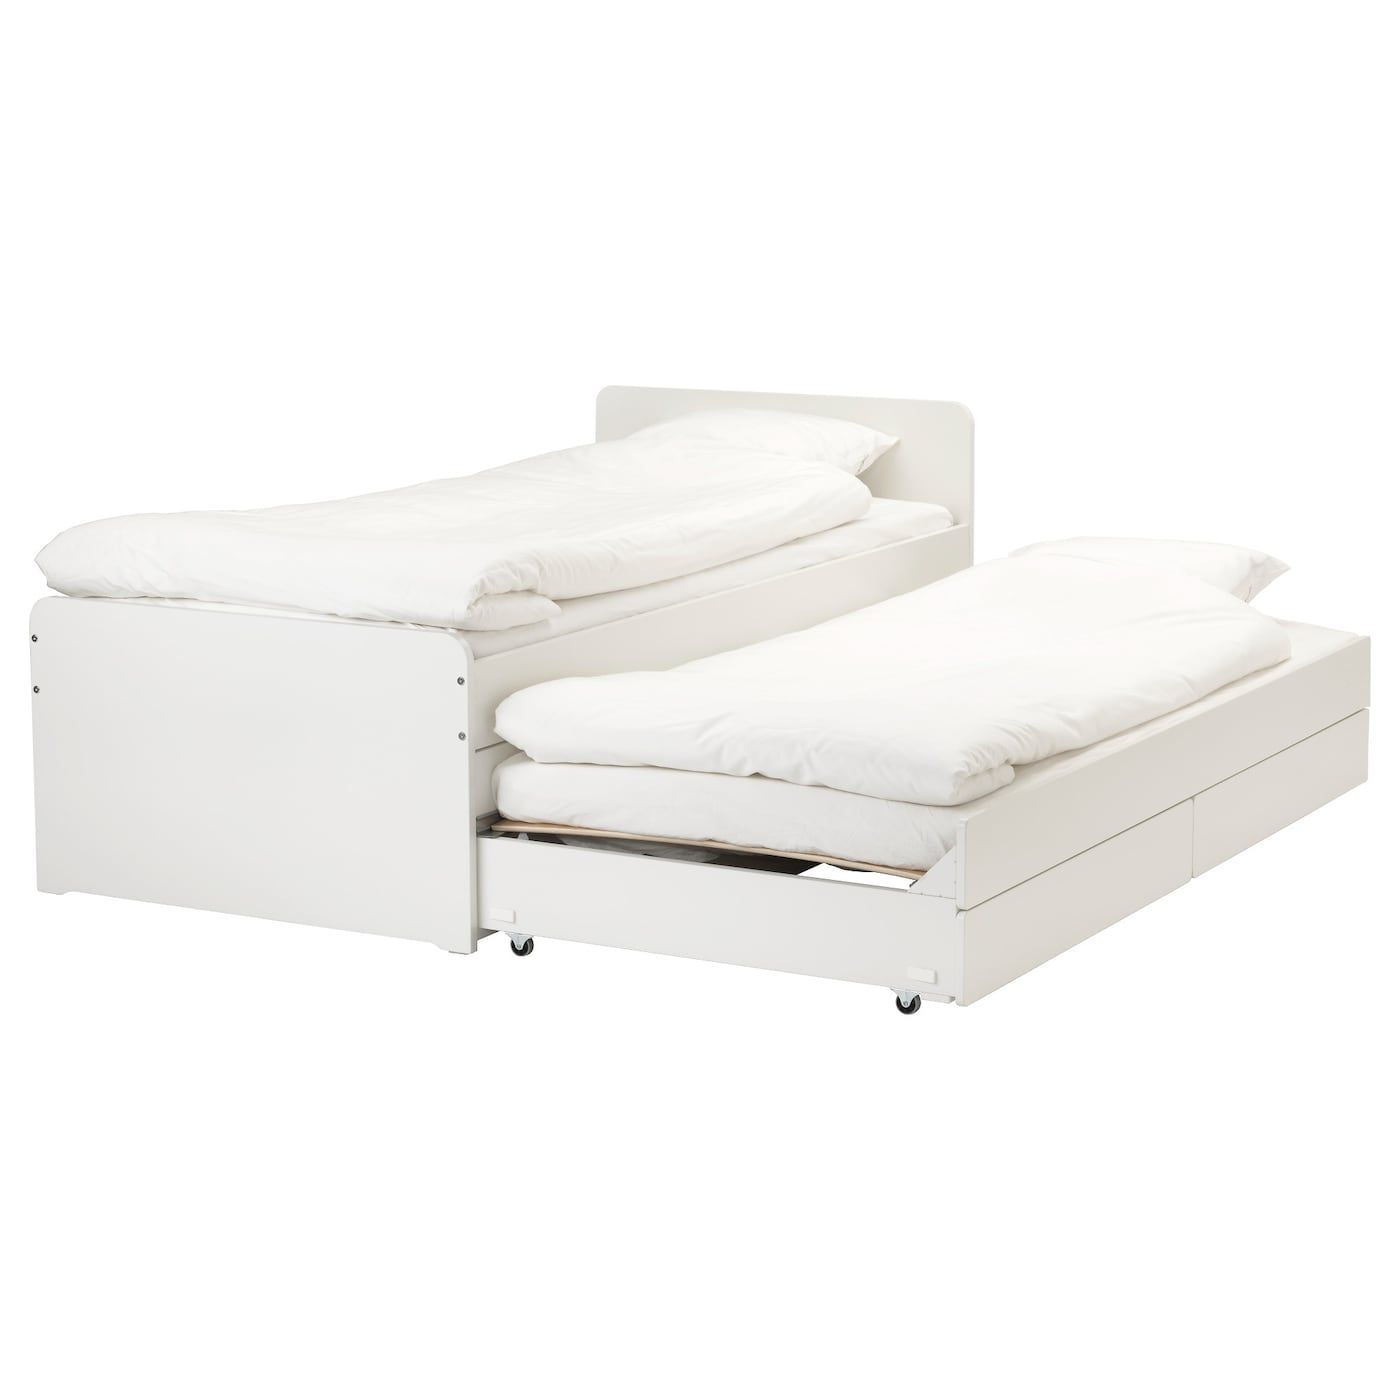 Slakt Bed Frame W Pull Out Bed Storage White Twin Bed Frame